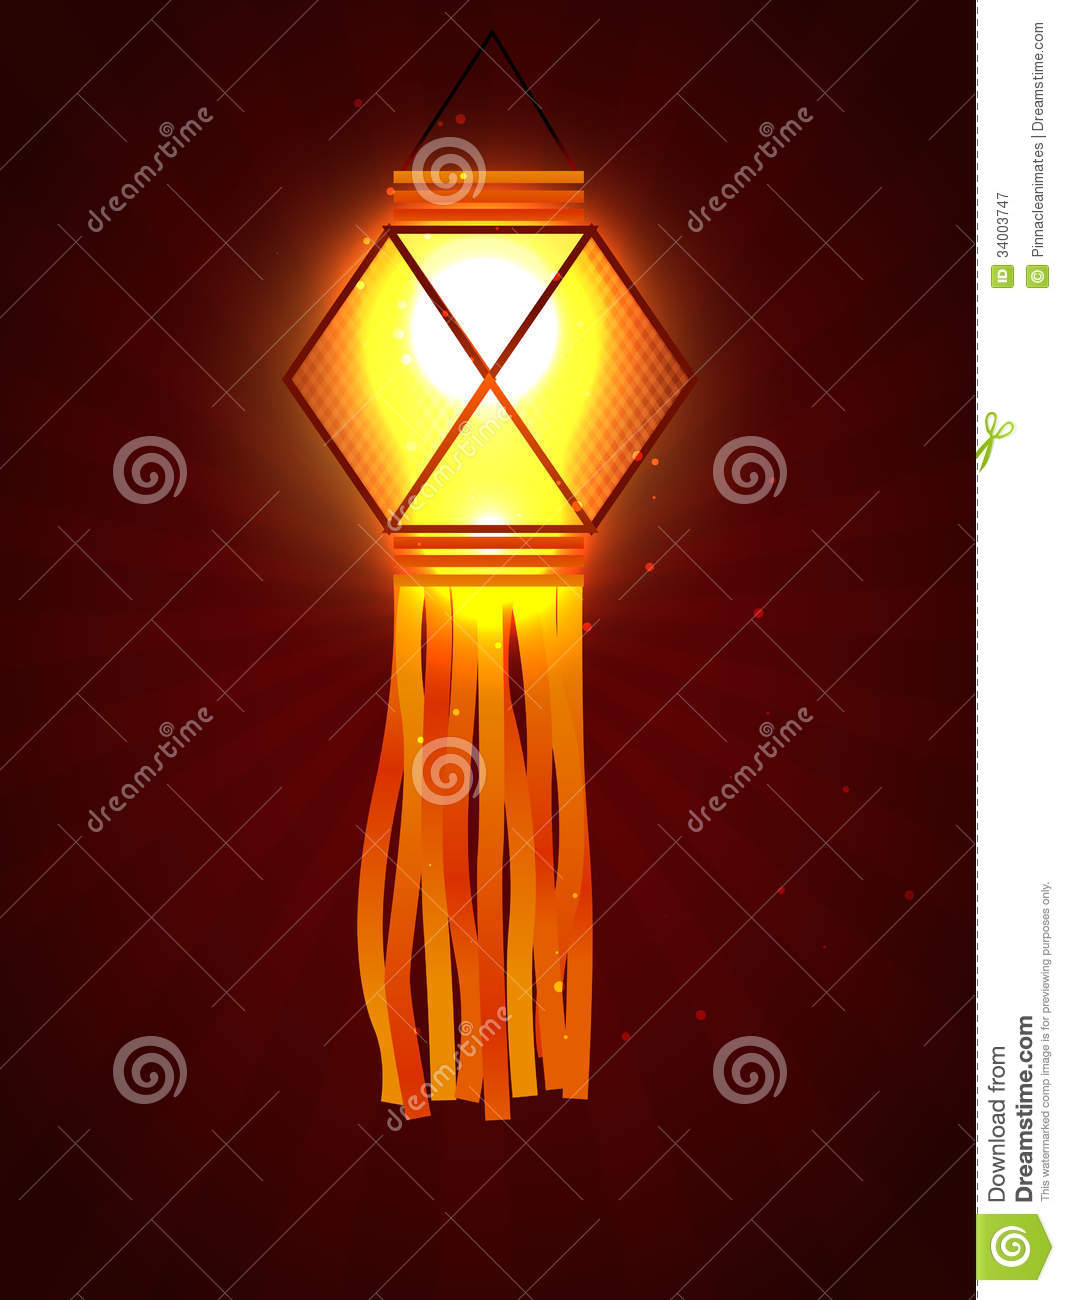 Diwali lamp design stock vector. Illustration of ethnic - 34003747 for Diwali Lamp Designs  570bof